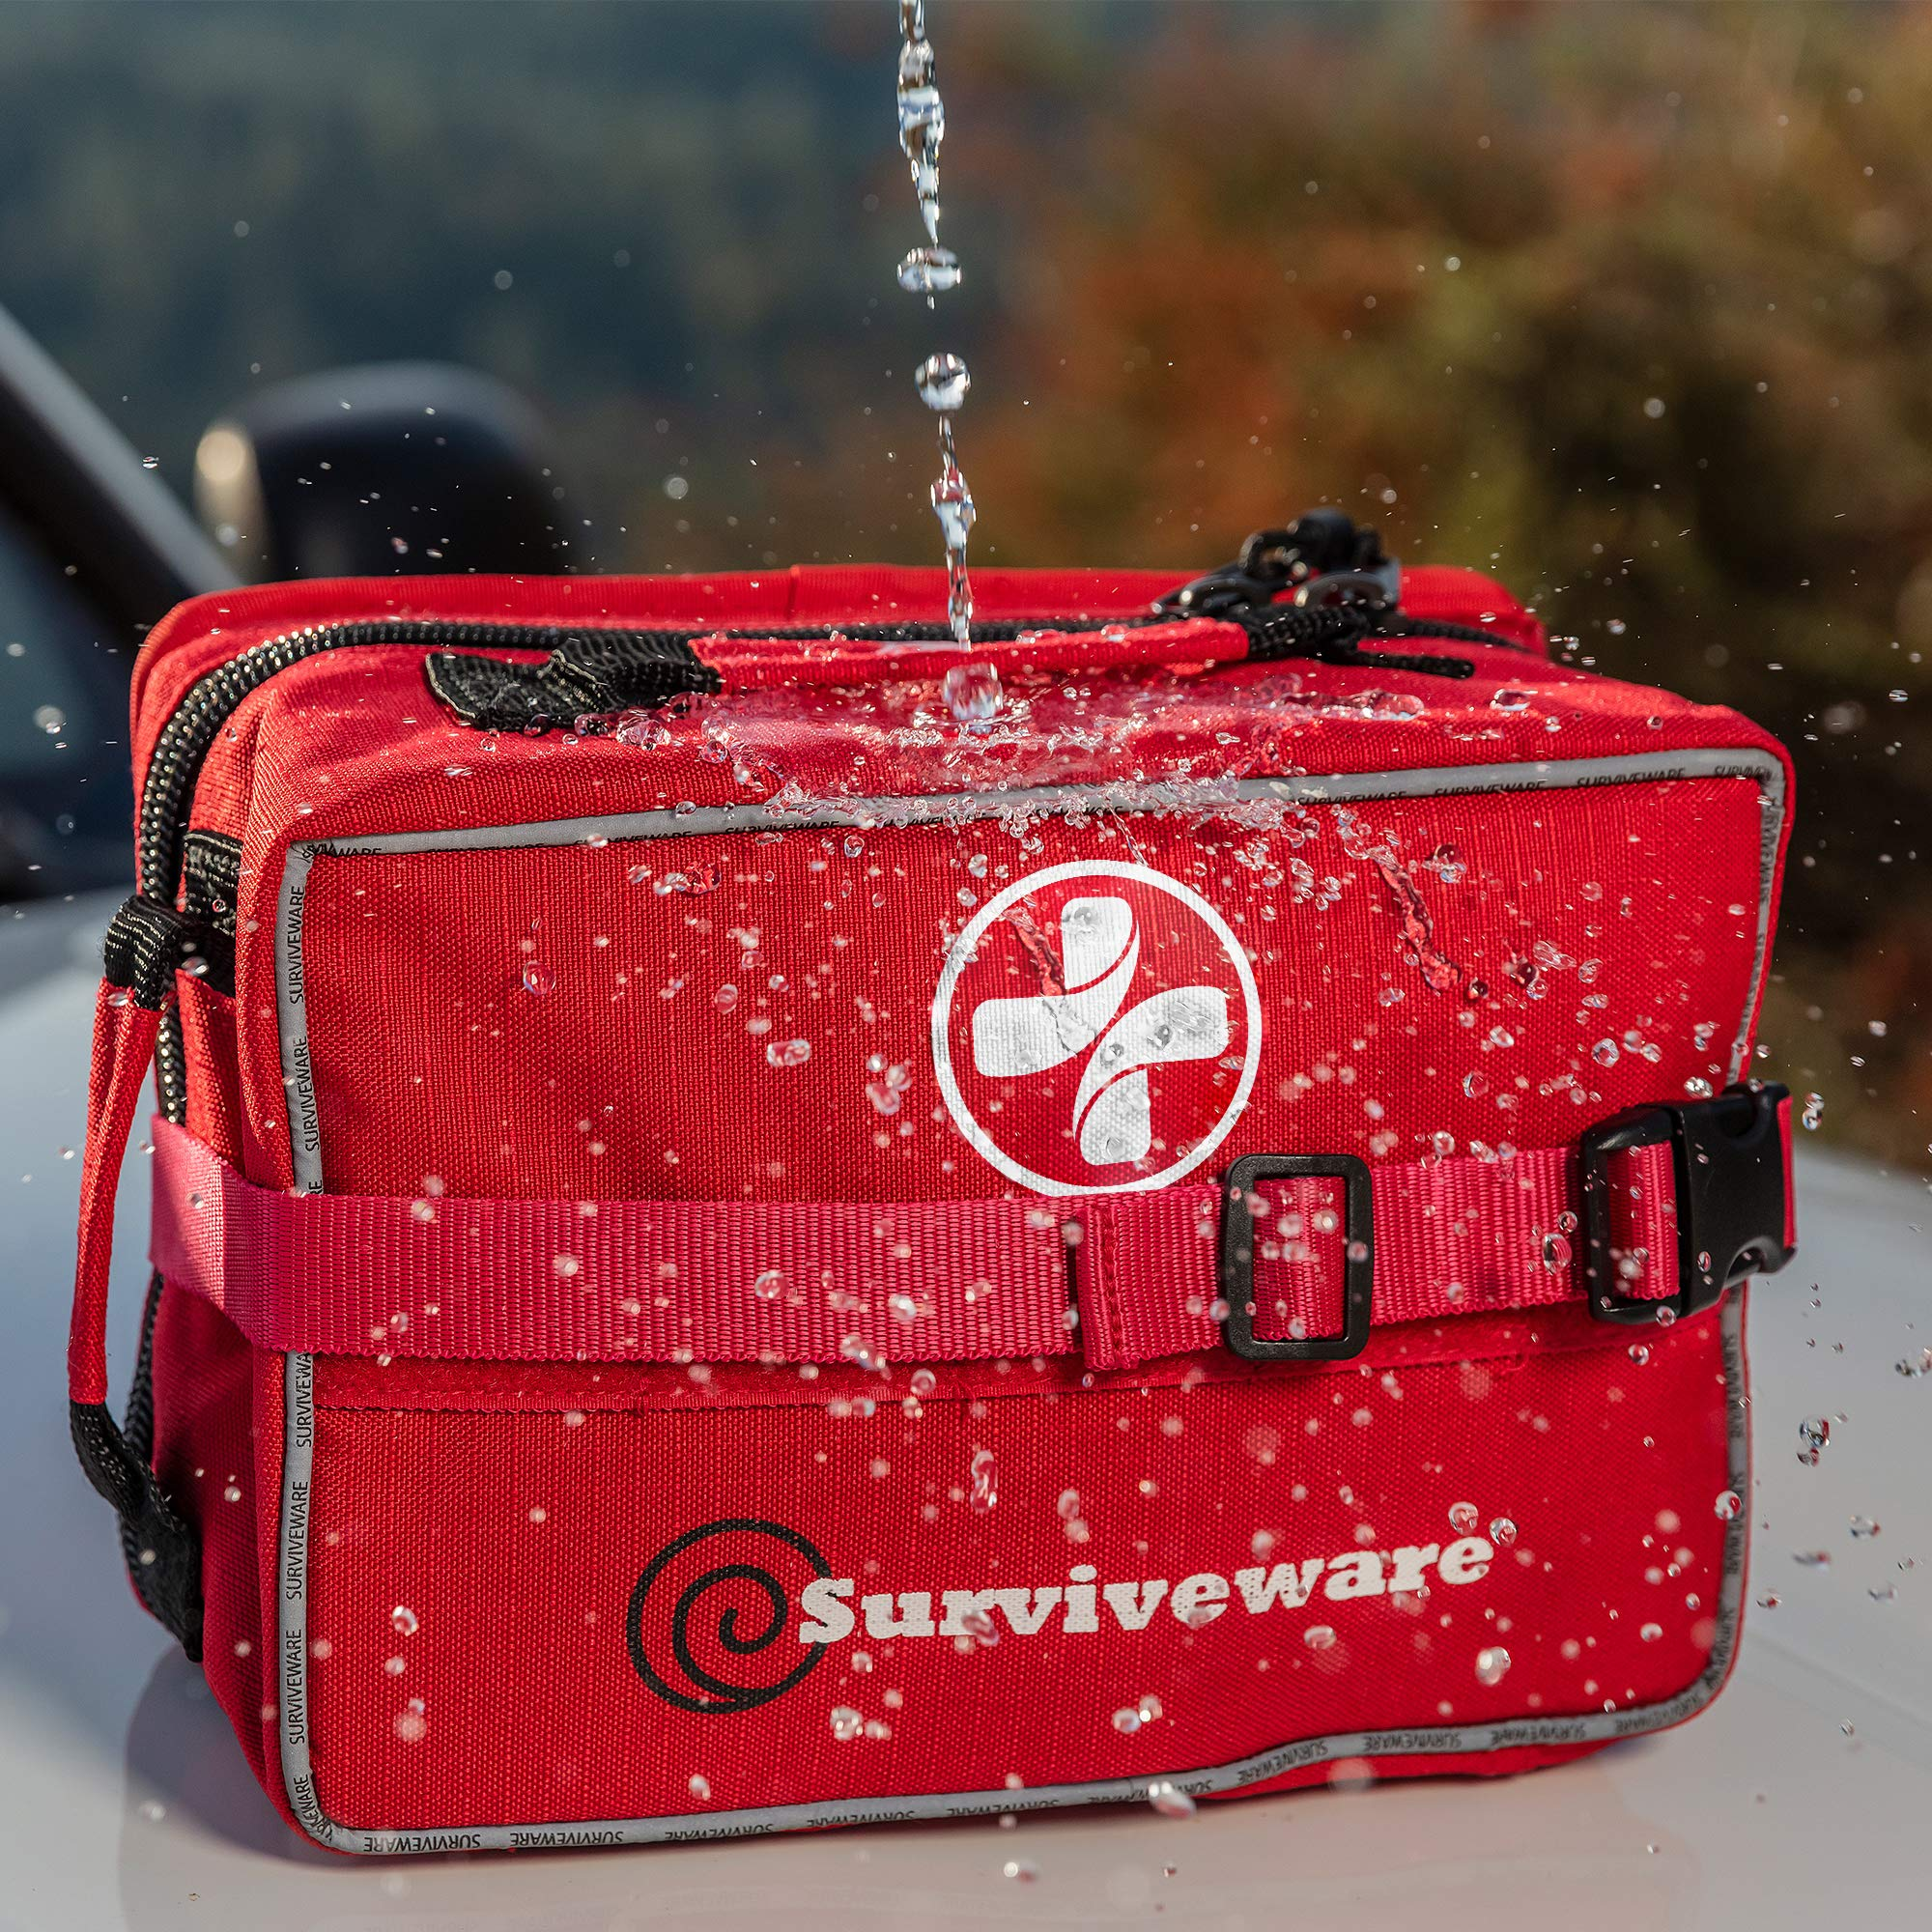 Surviveware Large First Aid Kit & Added Mini Kit by Surviveware (Image #6)